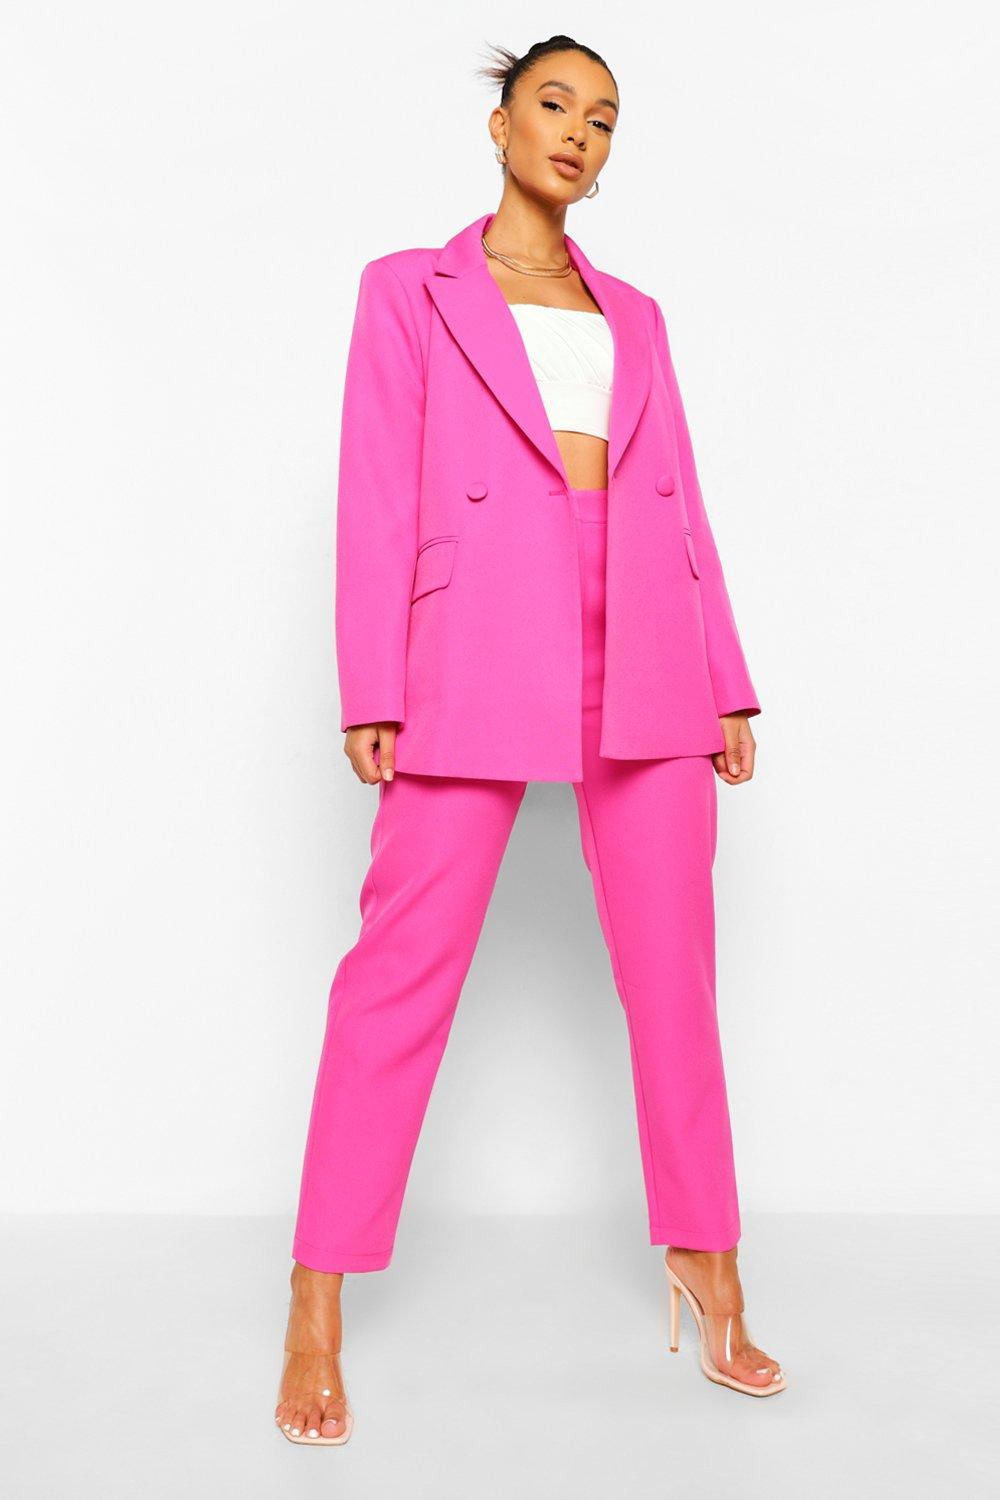 80s Dresses | Casual to Party Dresses Womens Mix  Match Brights Oversized Blazer - Pink - 12 $25.60 AT vintagedancer.com